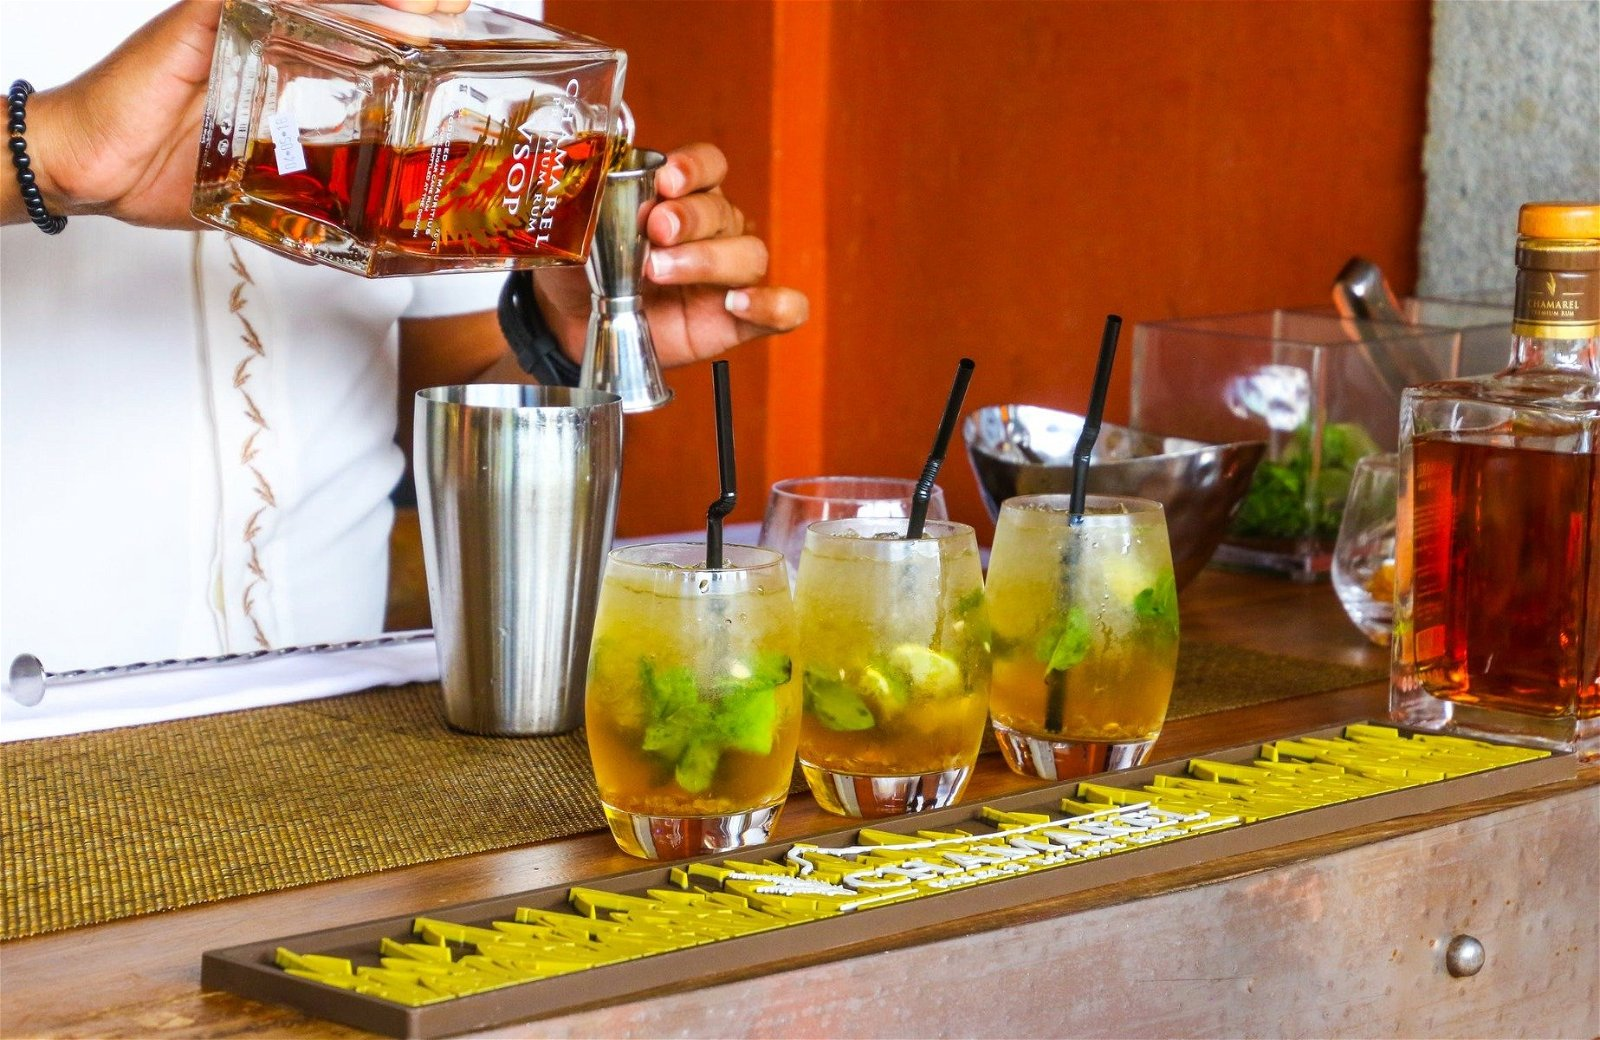 En bartender, der mixer dark and stormy